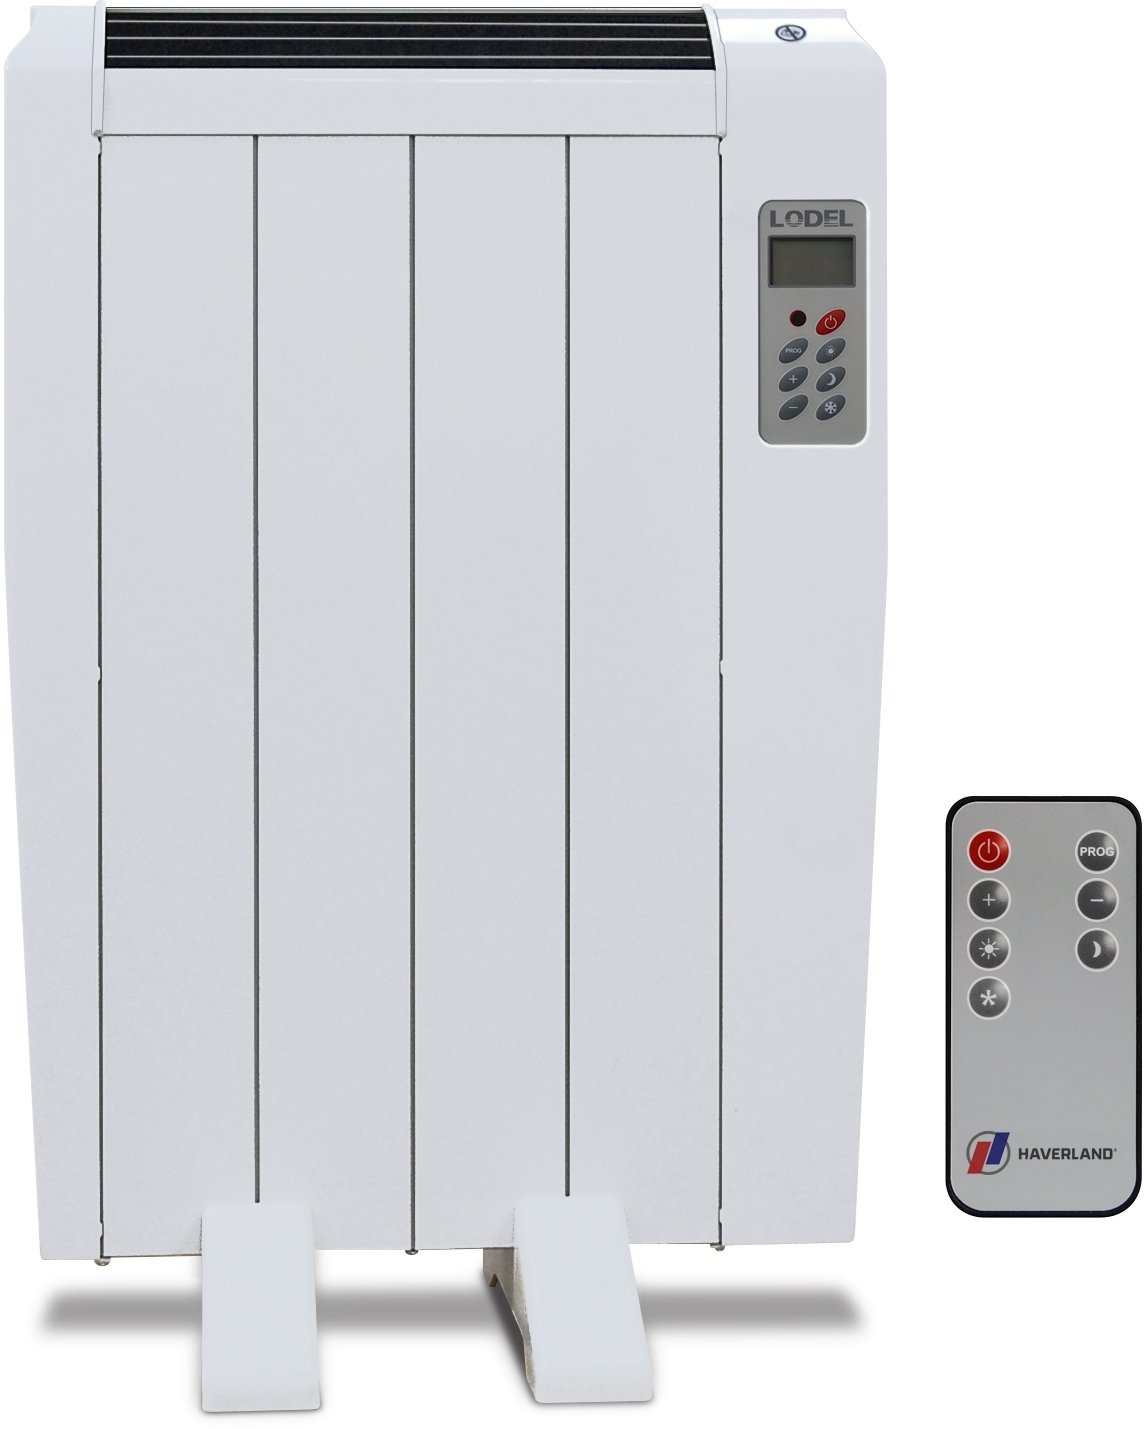 Electric Panel Heaters on electric irons, electric panel locks, electric towel rails and radiators, electric heating panels, electric cab heater, wood heaters, driveway heaters, electric heating elements, storage heaters, electric panel surge protector, convection heaters, electric panel doors, electric panel covers, gas heaters, motor heaters, water heaters, electric fires, space heaters, electric floor heating under tile, electric panel signs, electric heat, fan heaters, electric sockets, electric panel meters, convector heaters, electric storage heaters, electric heating systems, electric panel hardware, hot water baseboard heaters,